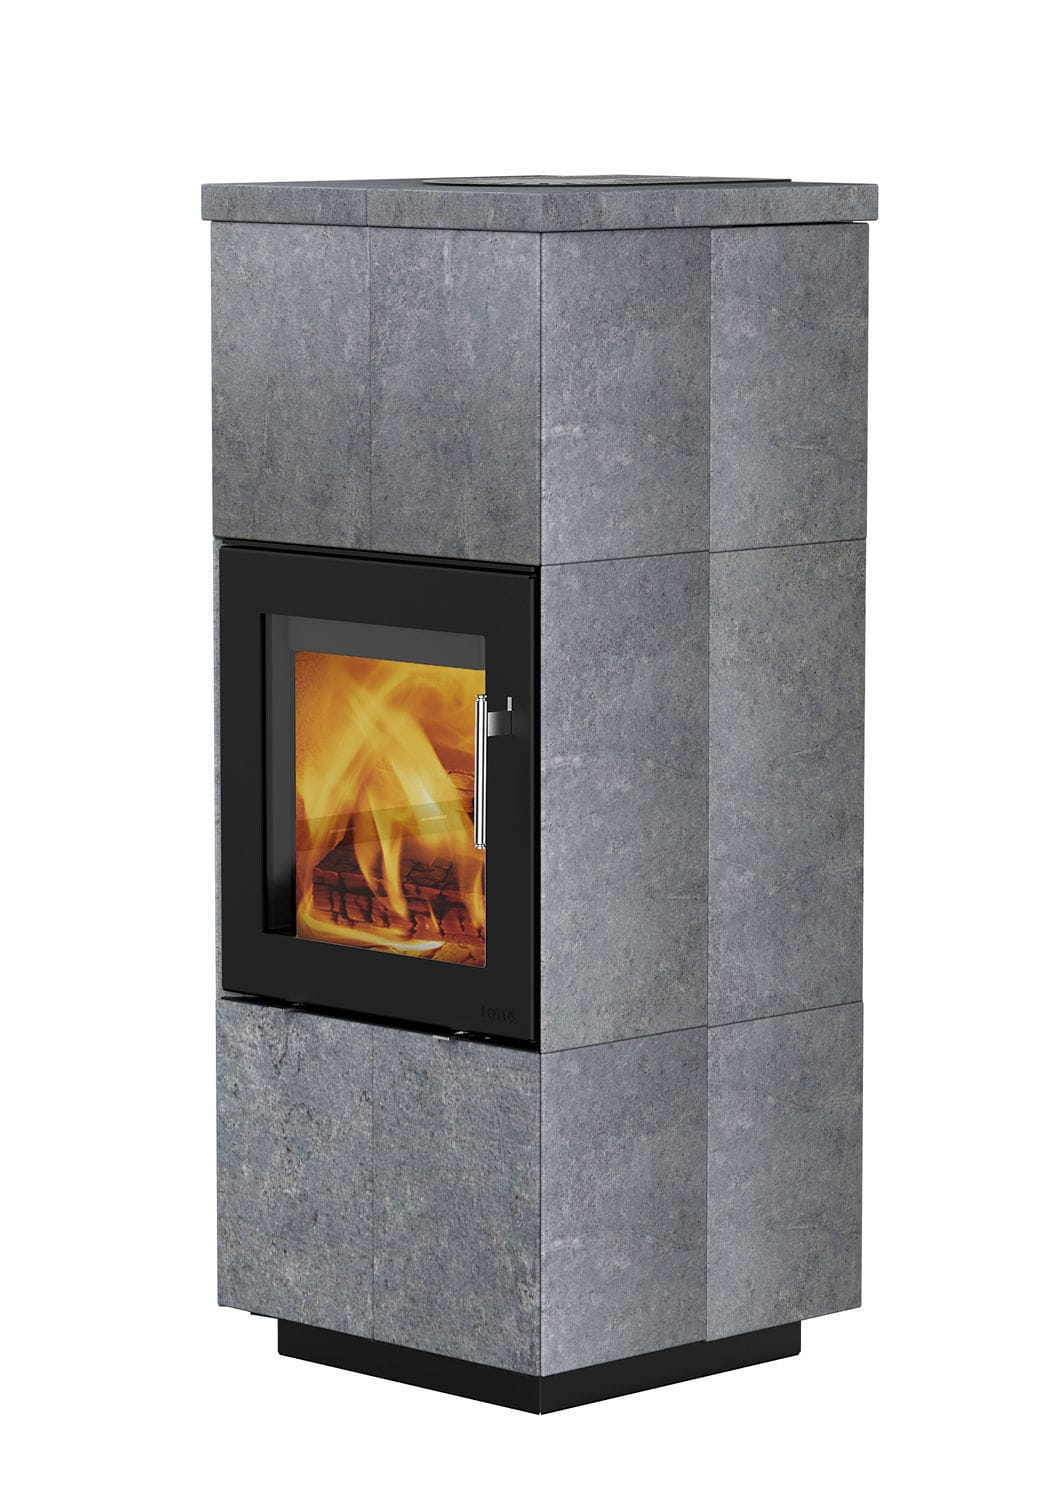 Lotus Kaminofen Style Wood Heating Stove Contemporary Stone Qm Lotus Heating